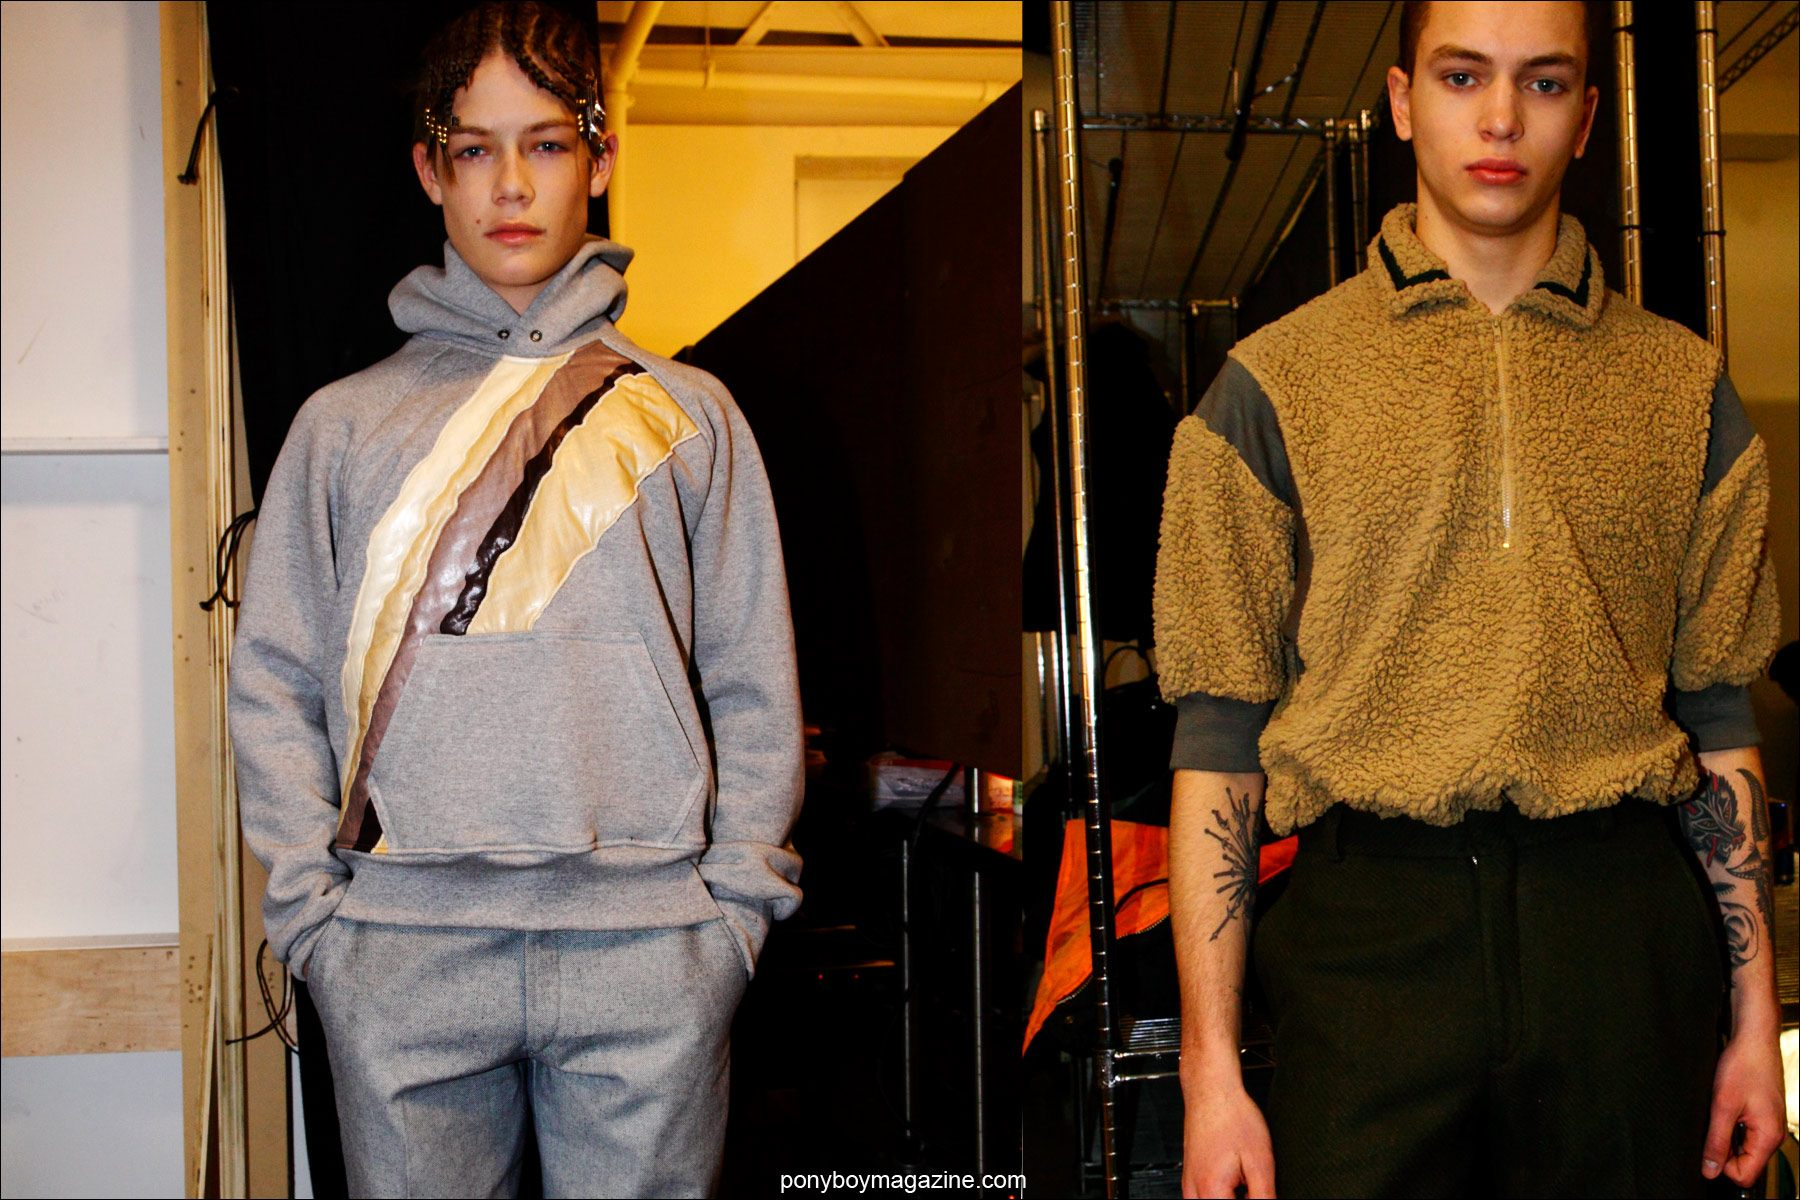 Male models snapped backstage by Ponyboy magazine photographer Alexander Thompson, at Martin Keehn F/W15 menswear collection at Pier 59 Studios in NY.